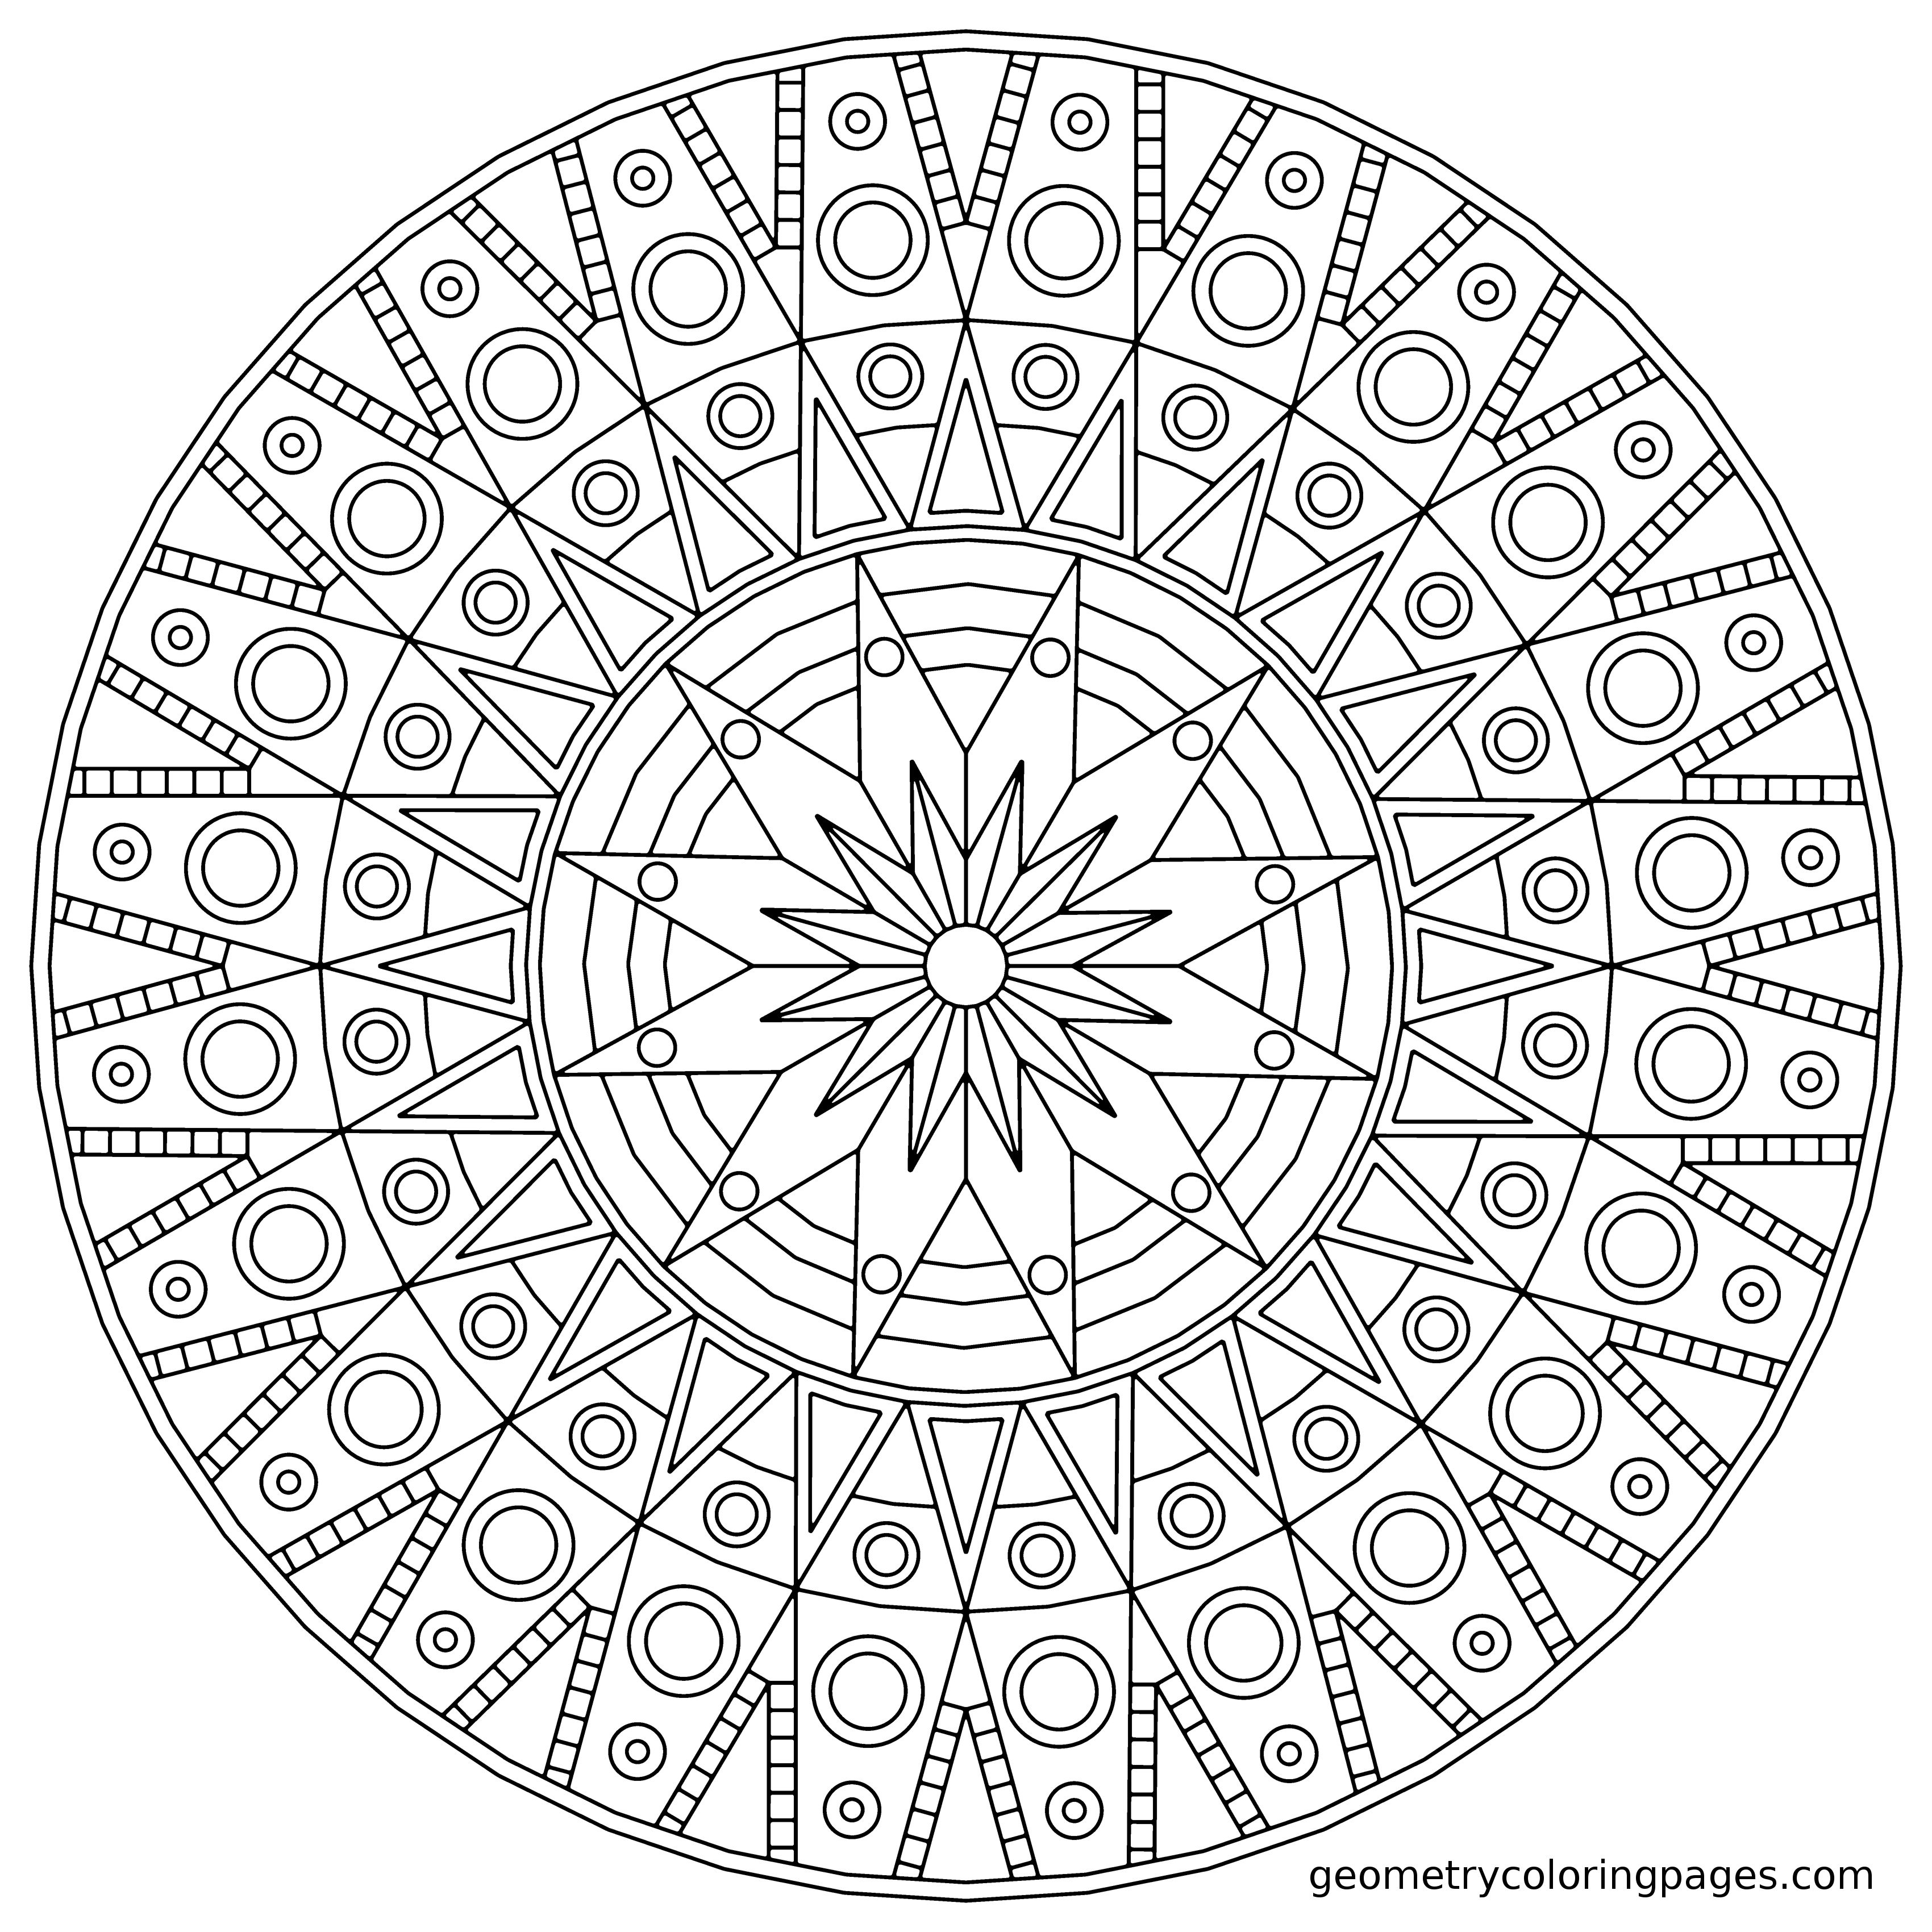 3400x3400 Mandala Coloring Pages Free Showy Expert Level Learnfree Gallery